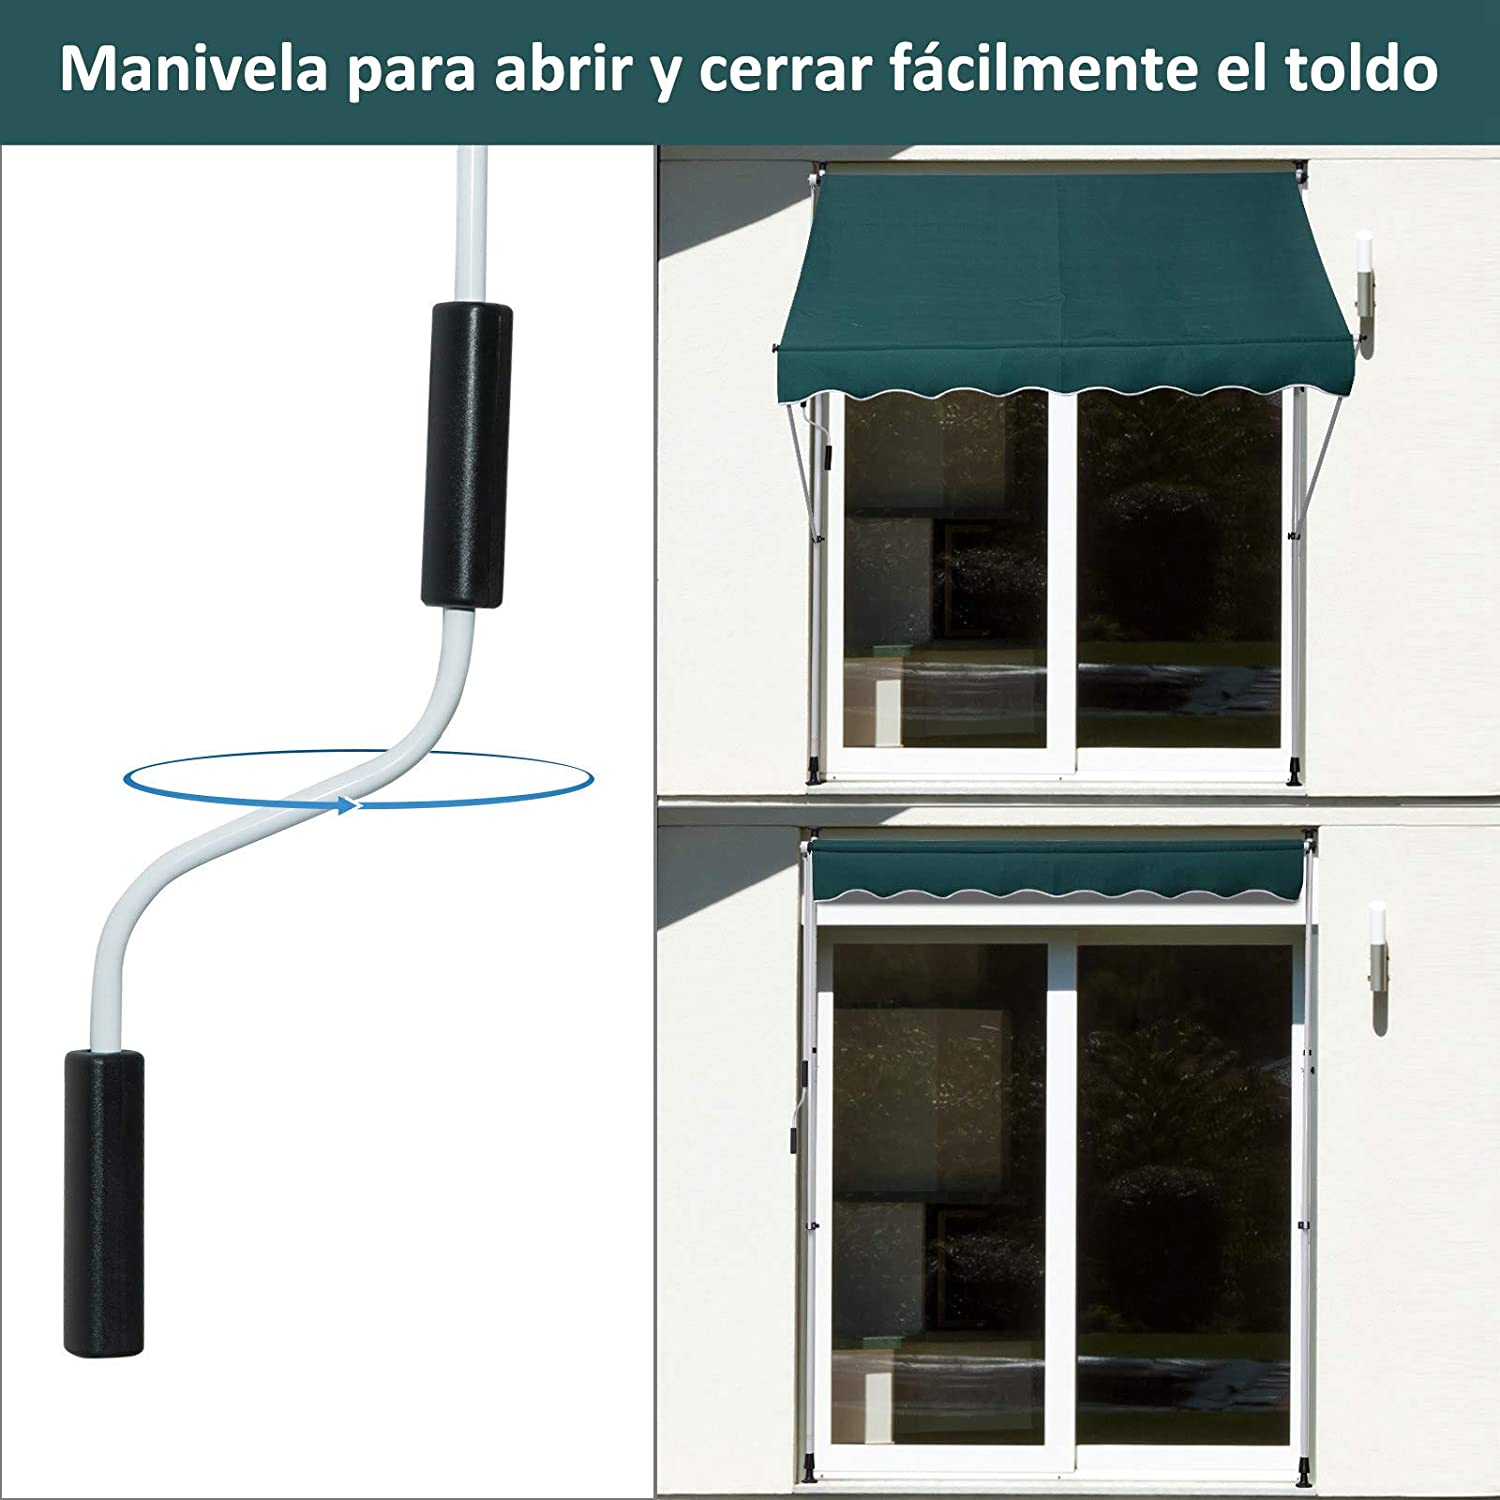 Outsunny Toldo Manual Balcón Patio Toldo Portátil Plegable de ...